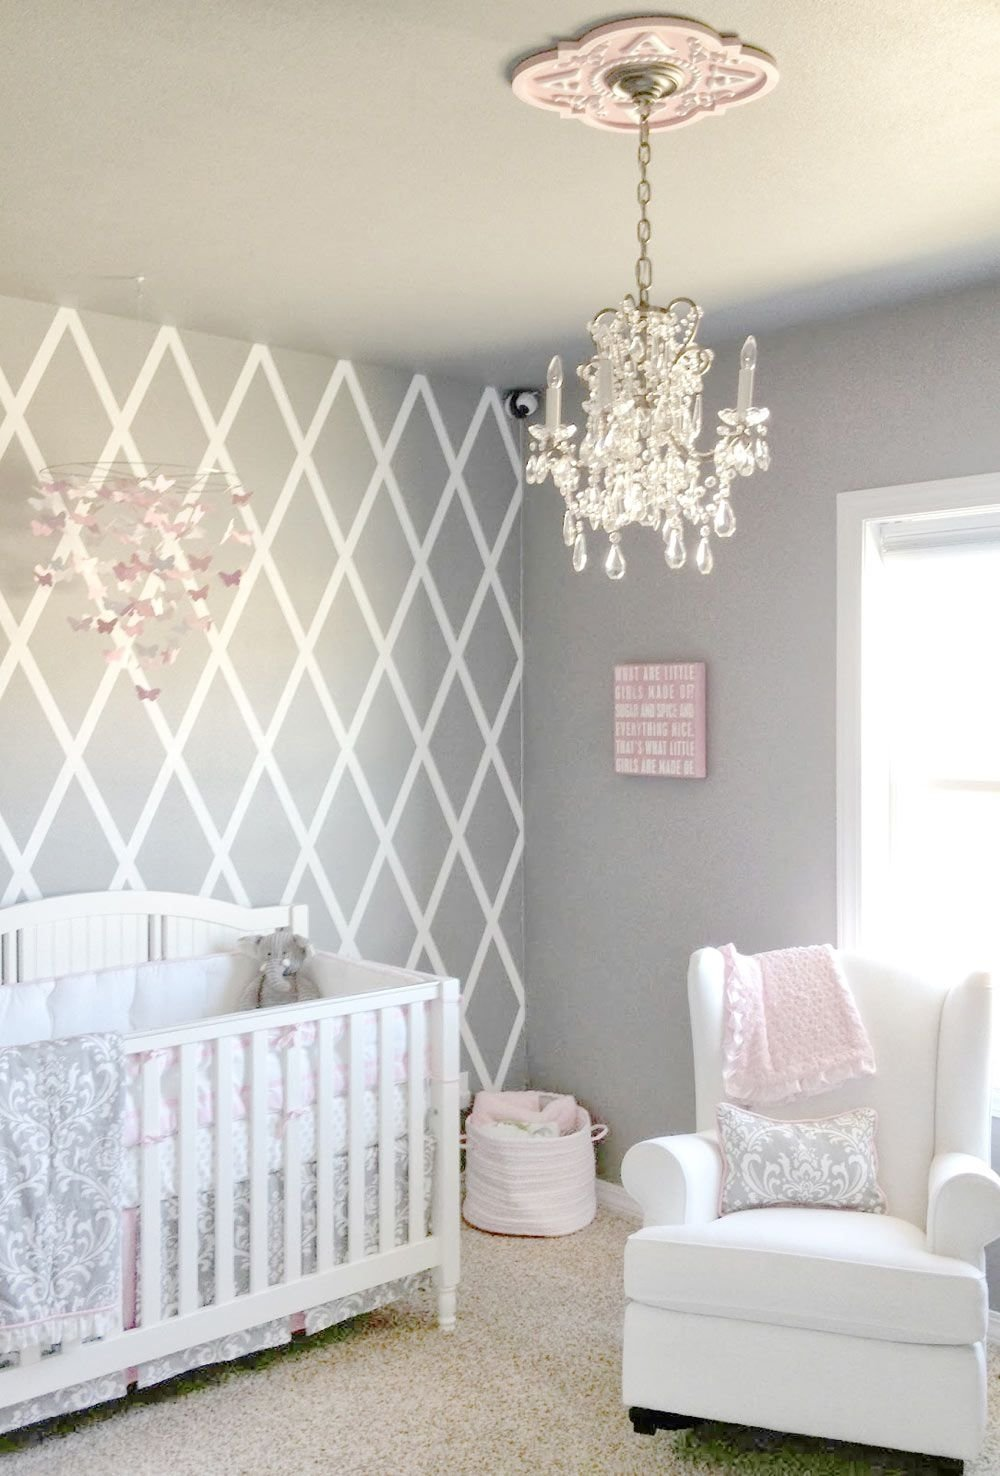 10 Most Recommended Ideas For Baby Girl Room pink and gray crib bedding sets baby girl nursery baby nursery 1